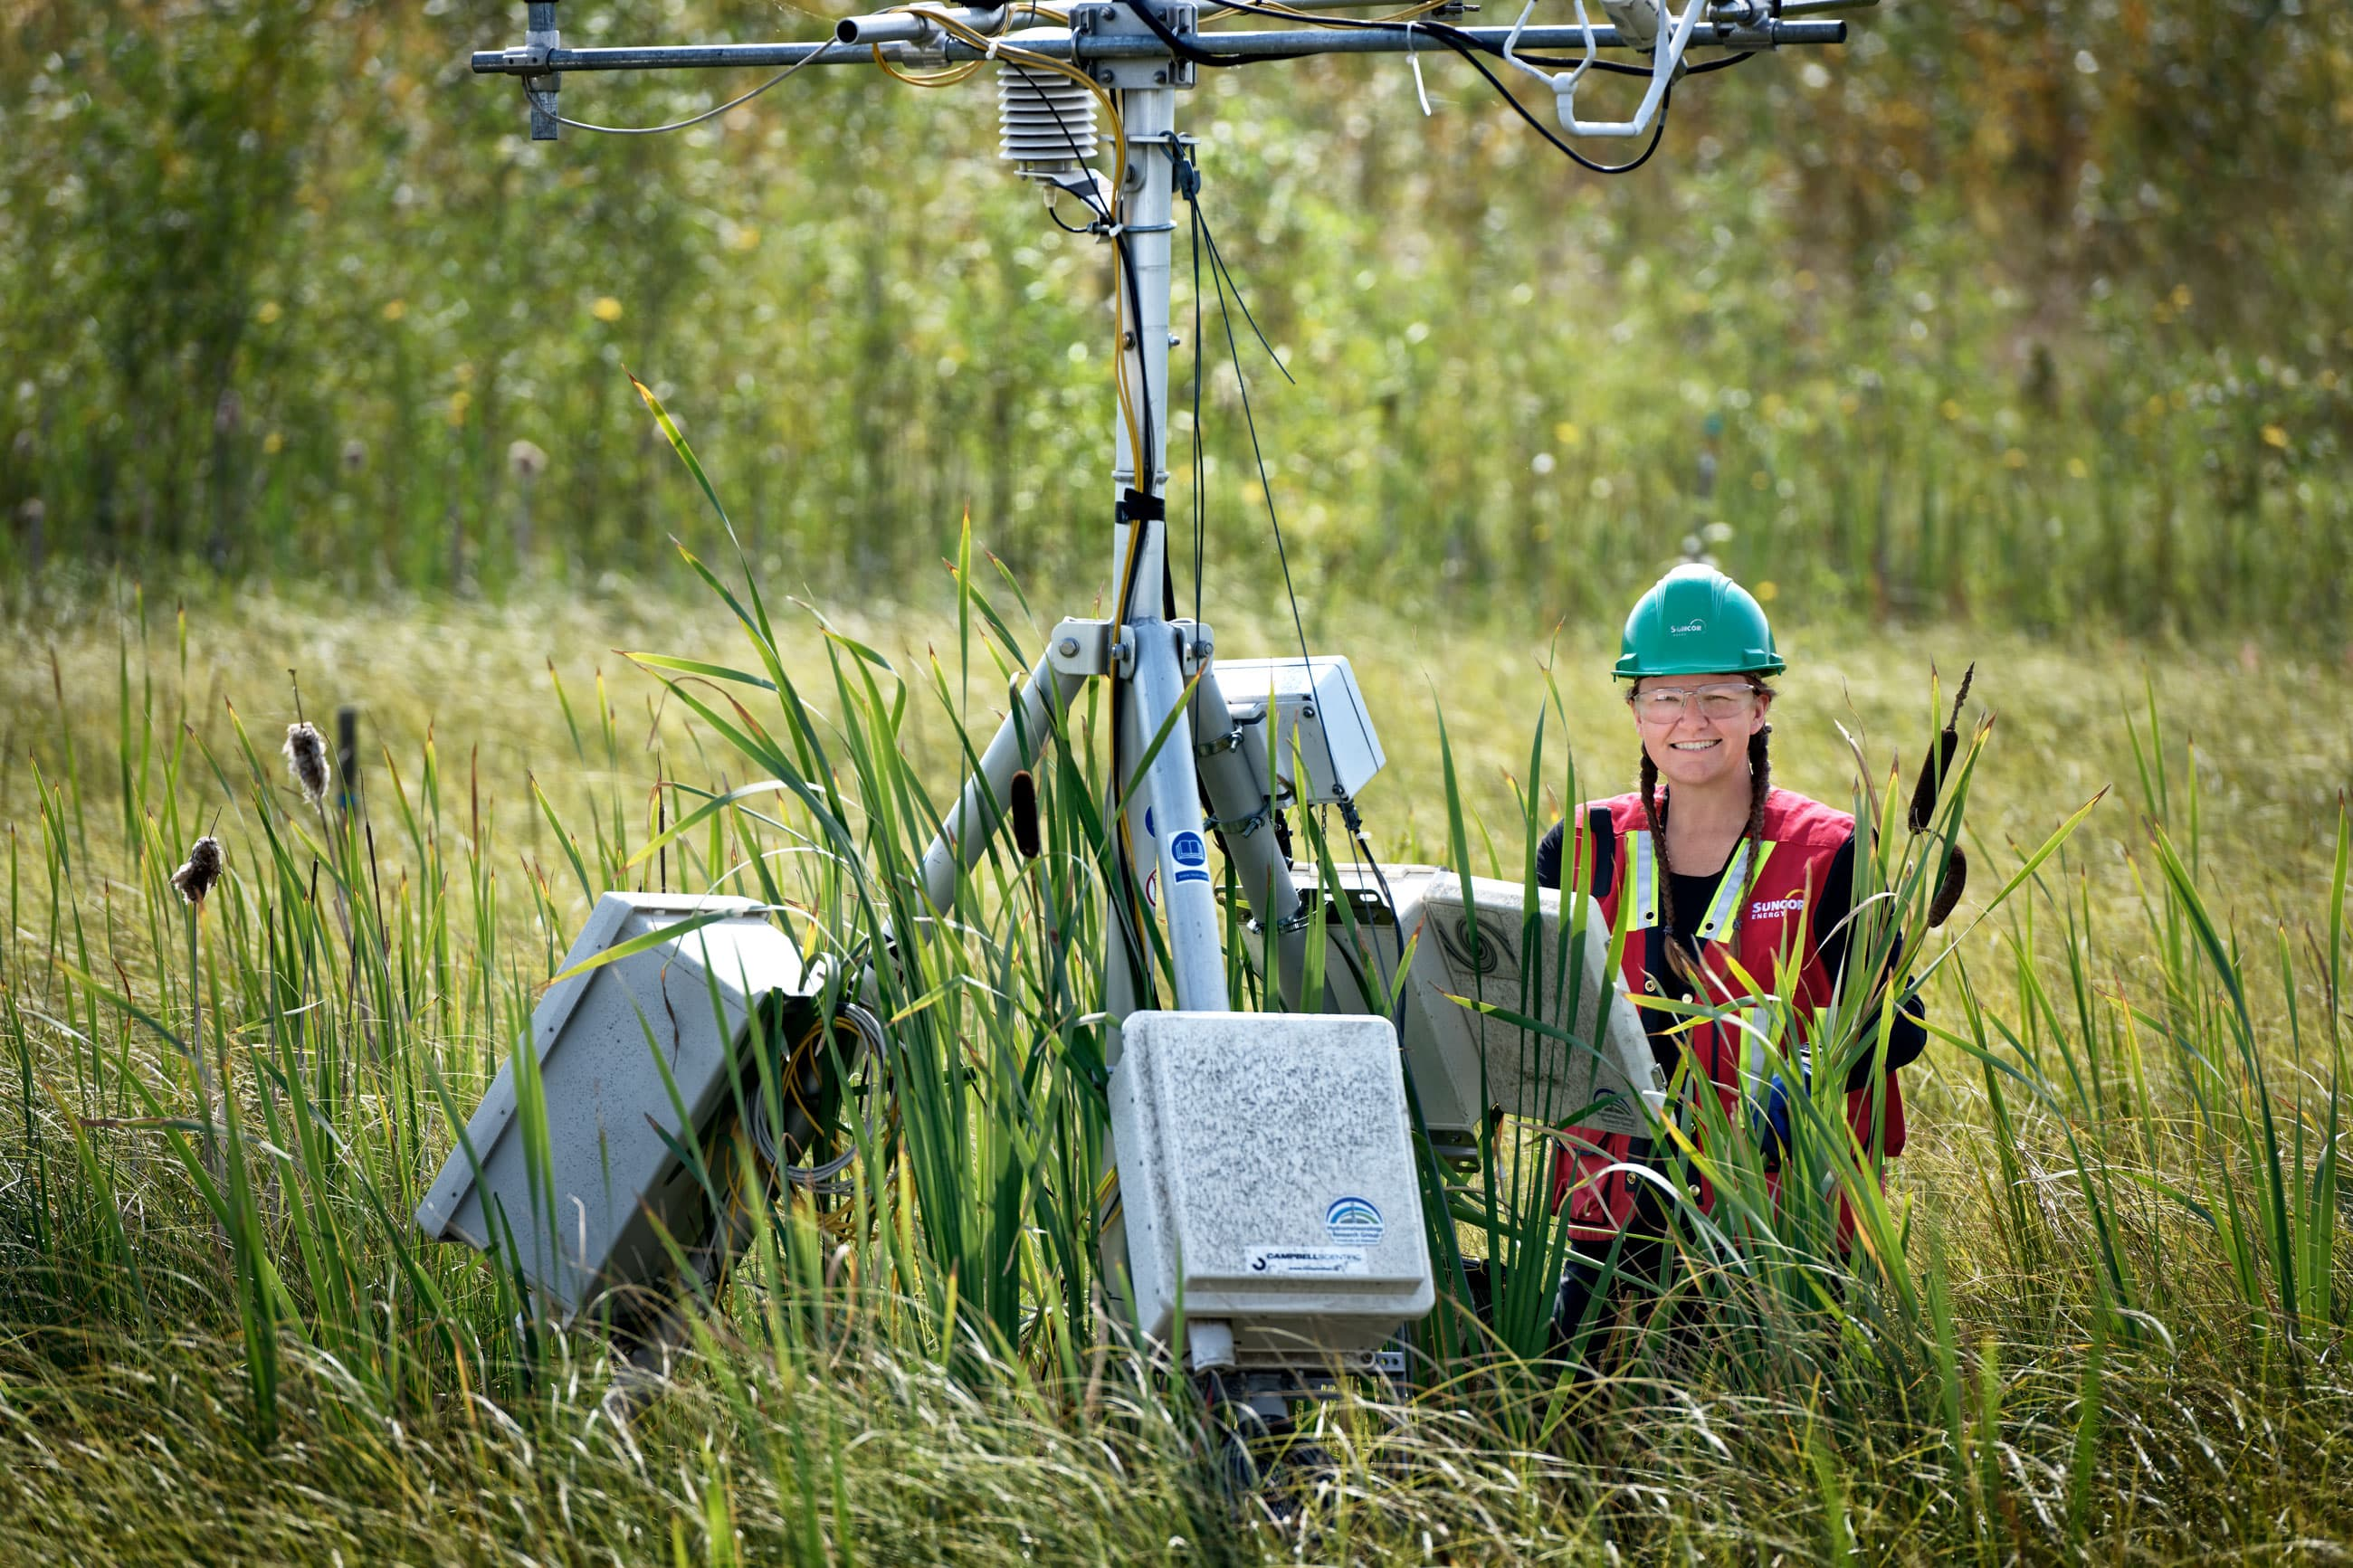 A Suncor air quality tester uses her equipment